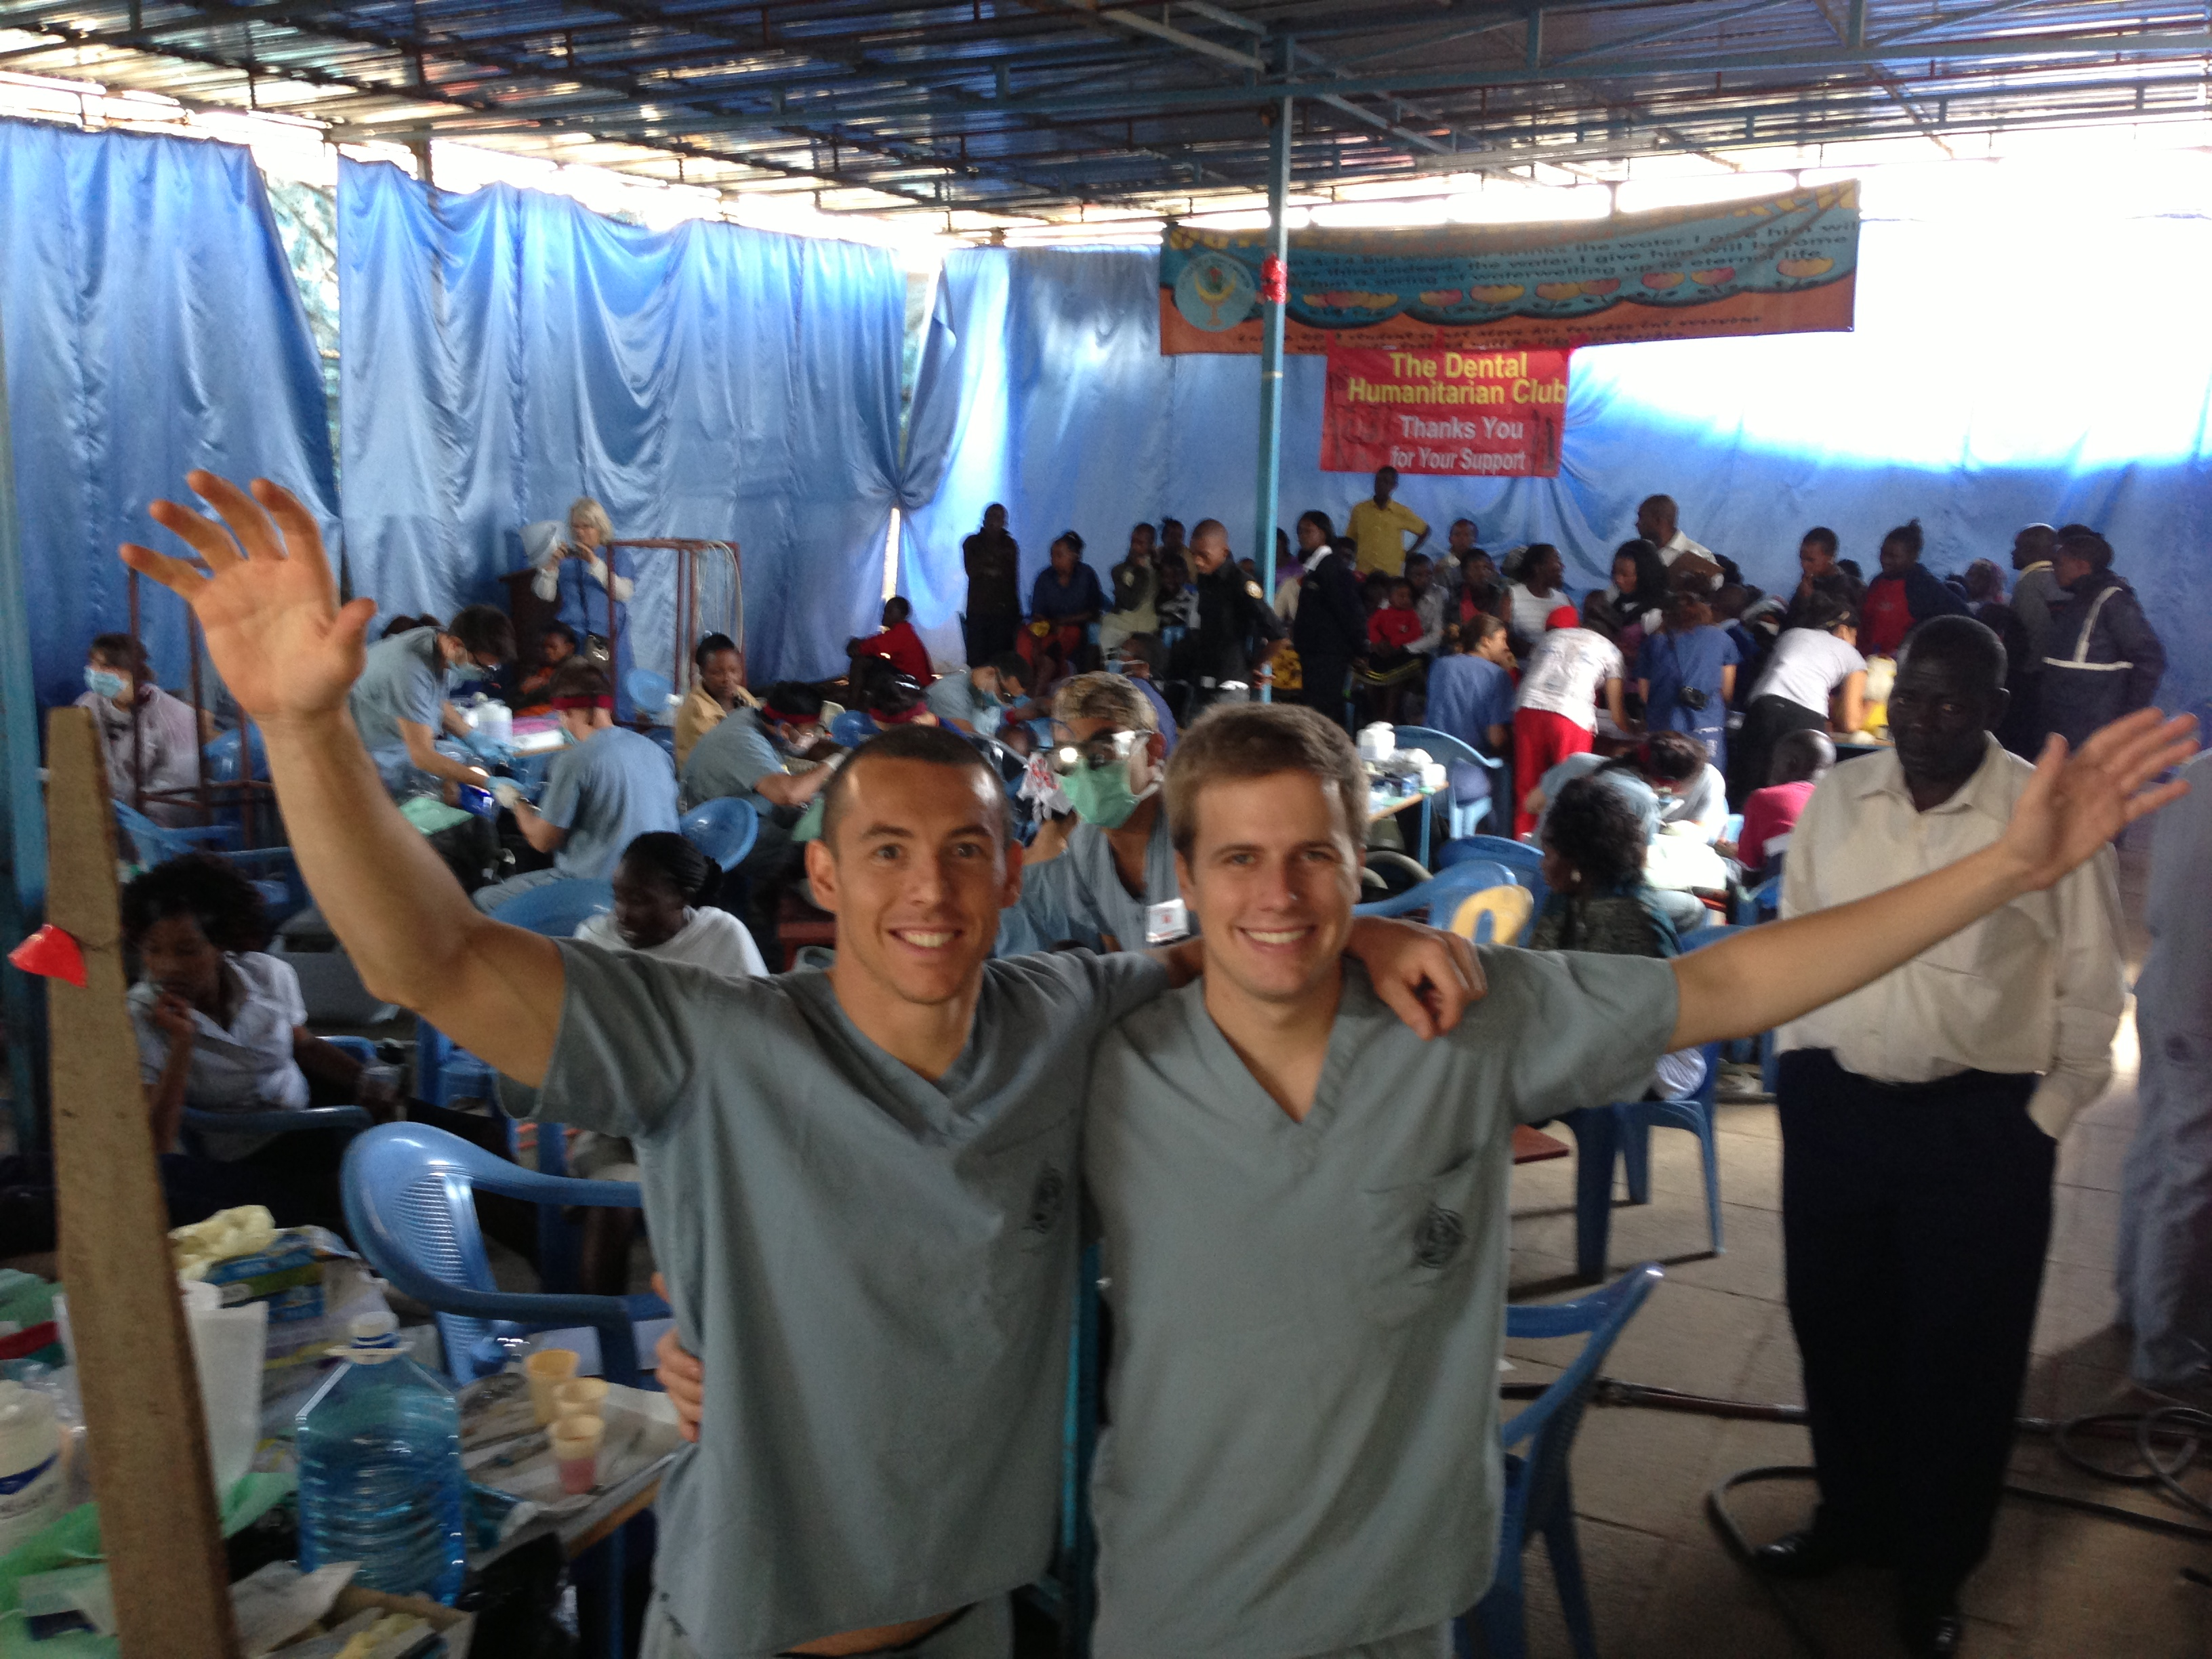 Chapman University alumnus Sean Vreeburg, right, along with fellow dental student Marco Savittieri, organized and led a large-scale humanitarian dental trip to Kenya.